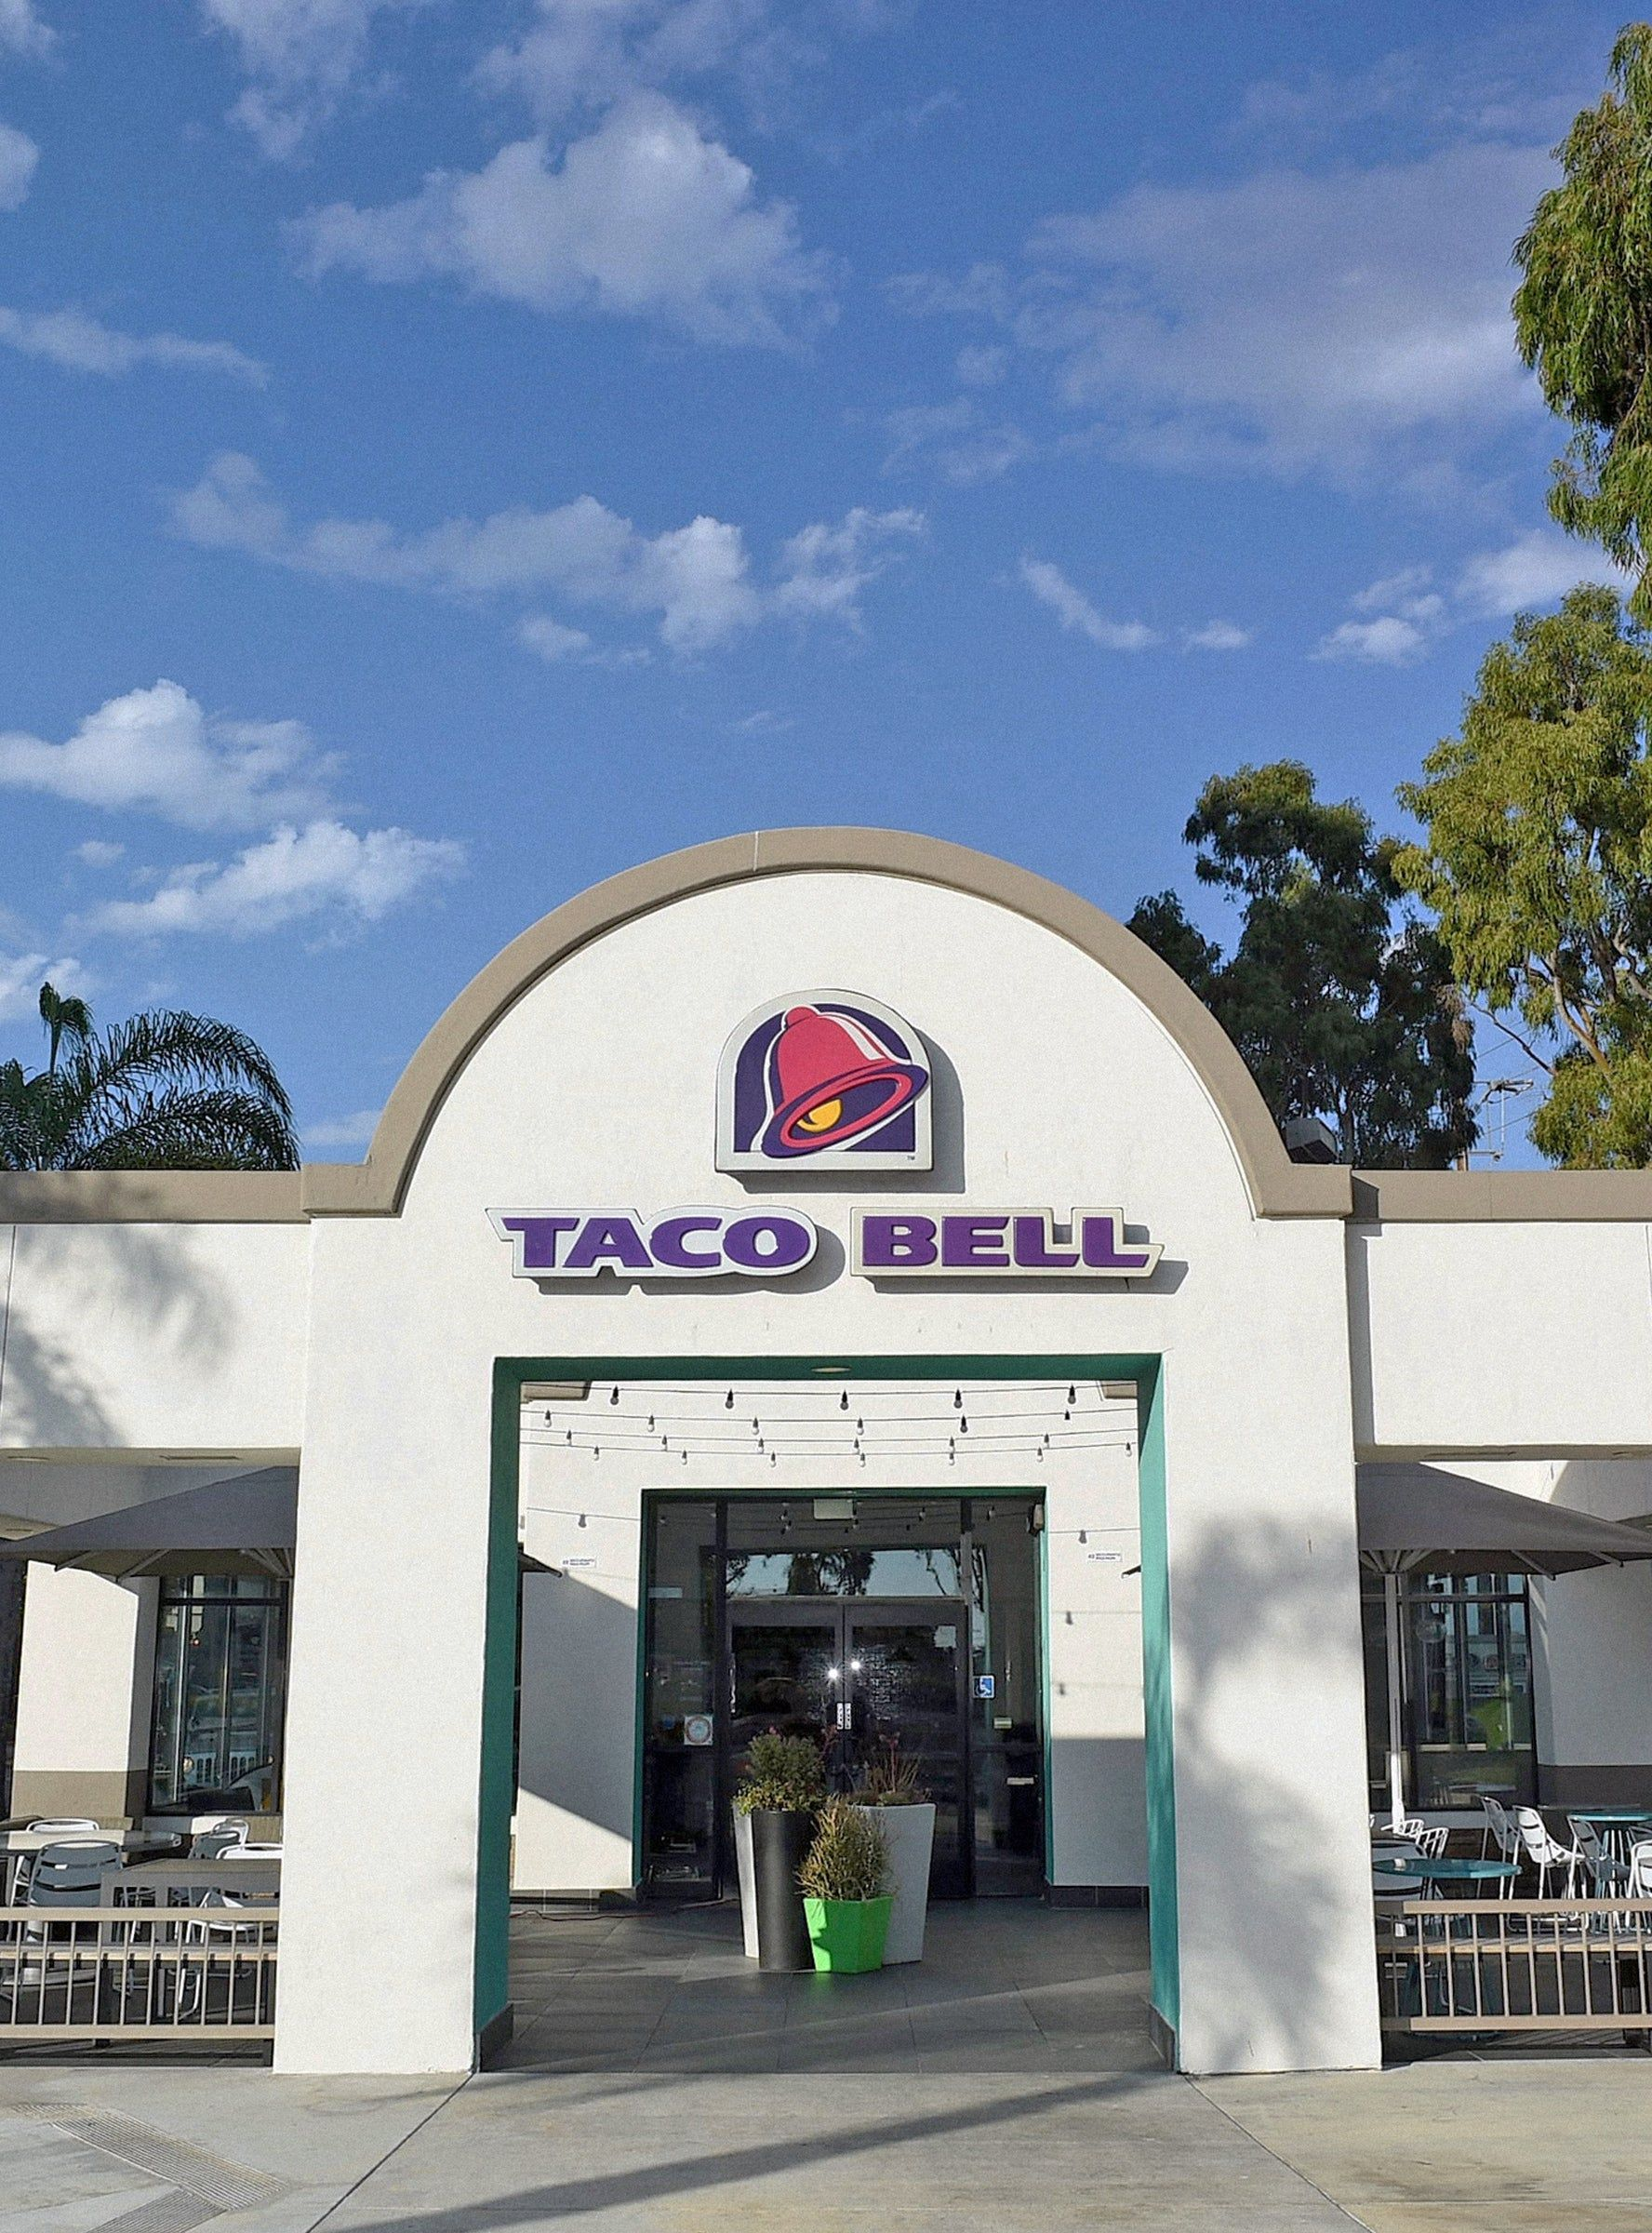 This Is Not A Drill You Can Now Make 100 000 Working At Taco Bell In 2020 Taco Bell Company Meals Tacos